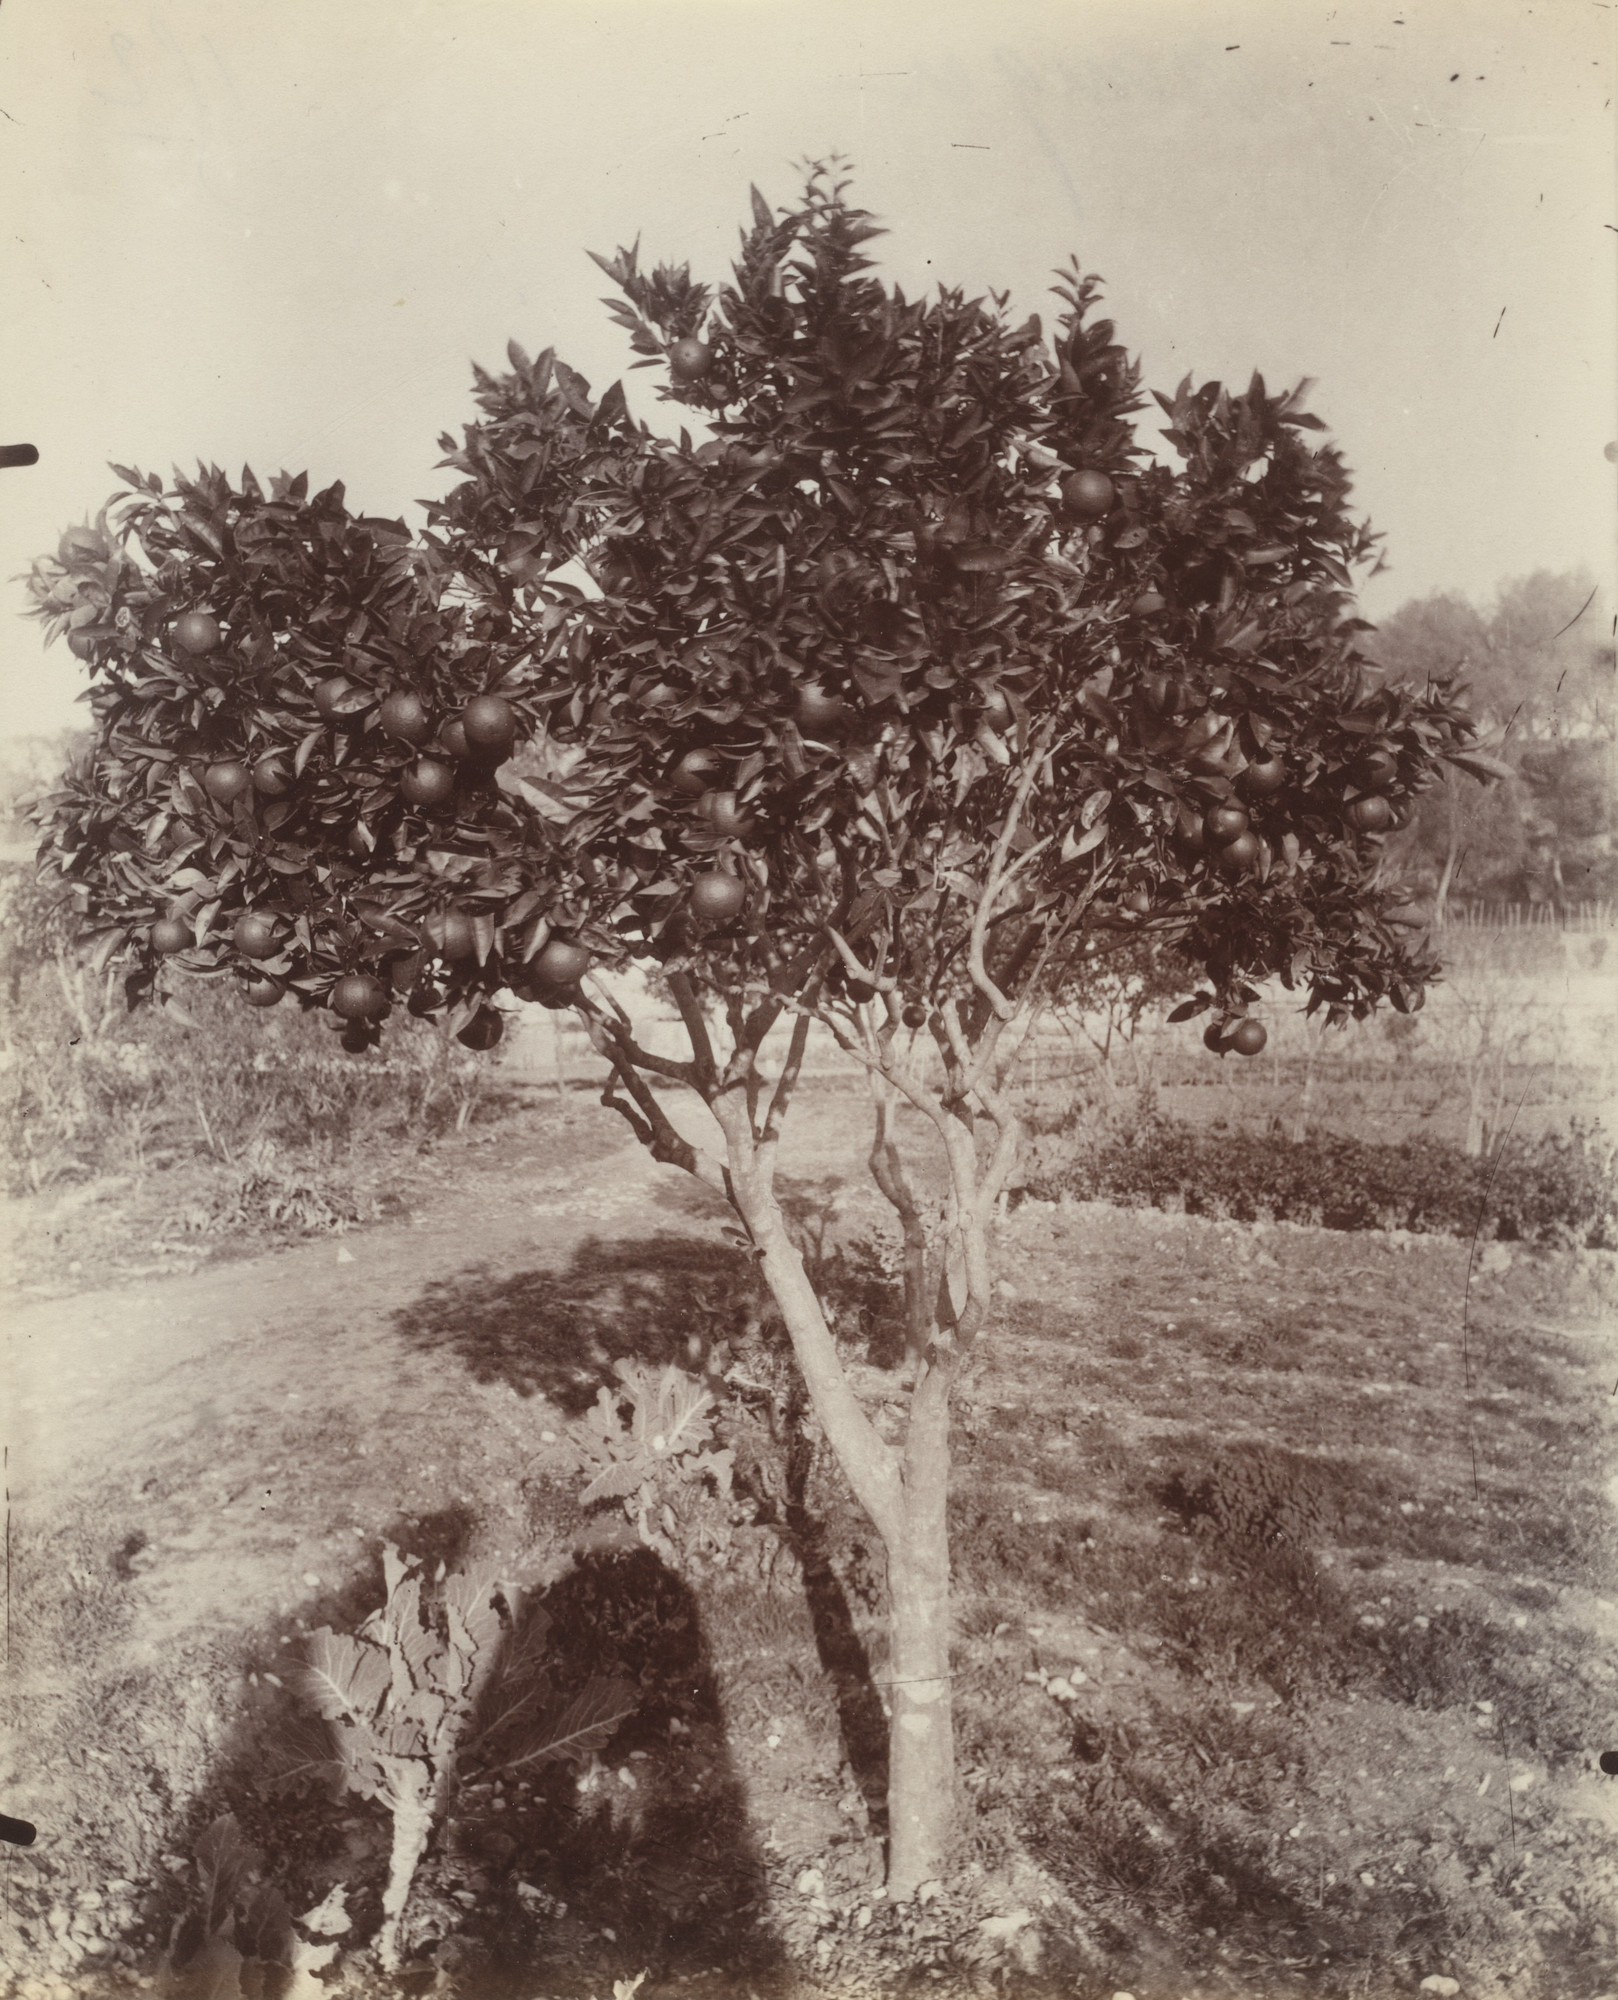 Eugène Atget. Orange Tree. Before 1900